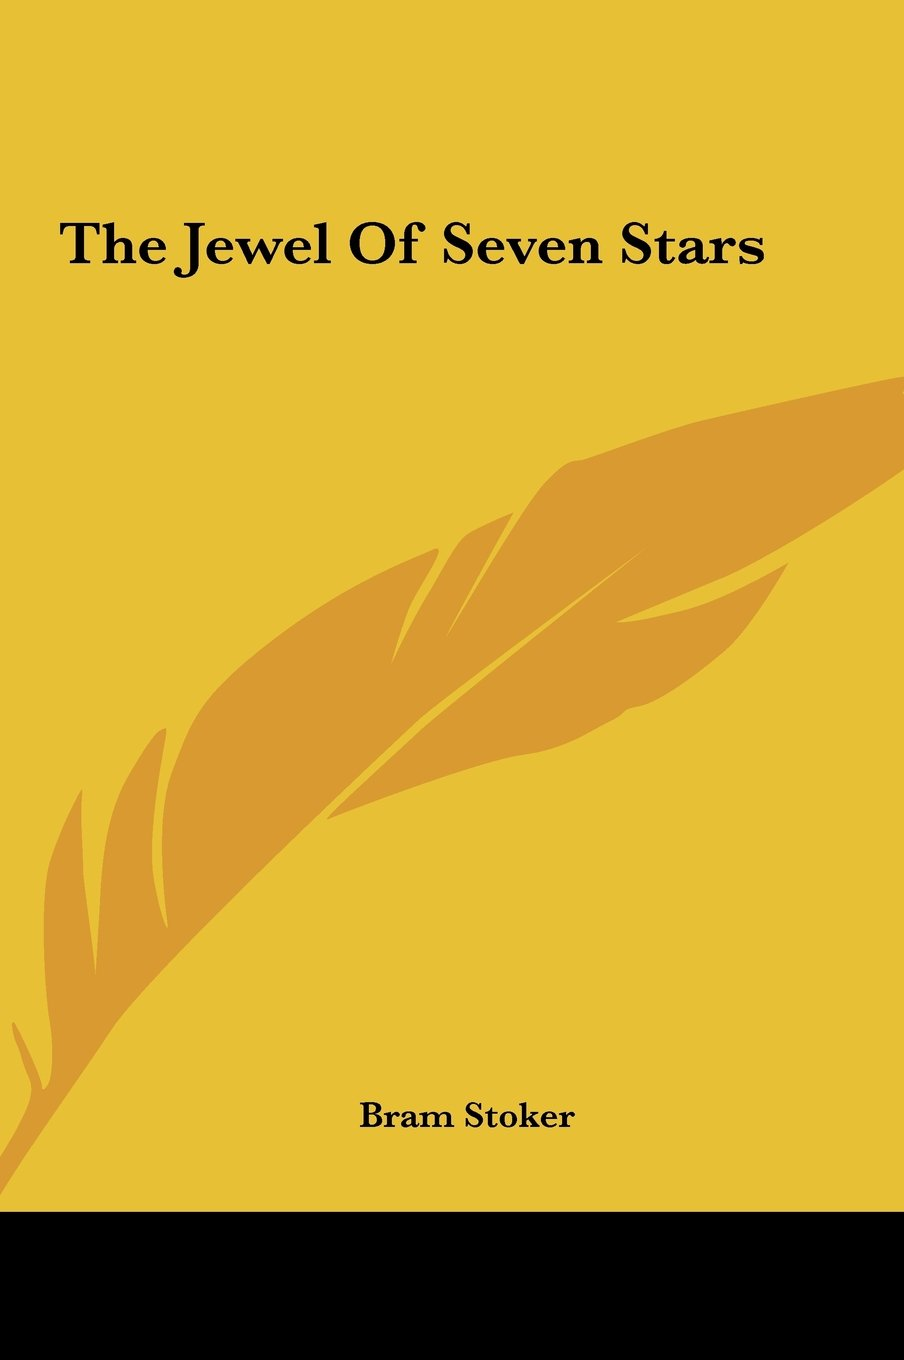 The Jewel of Seven Stars the Jewel of Seven Stars ebook